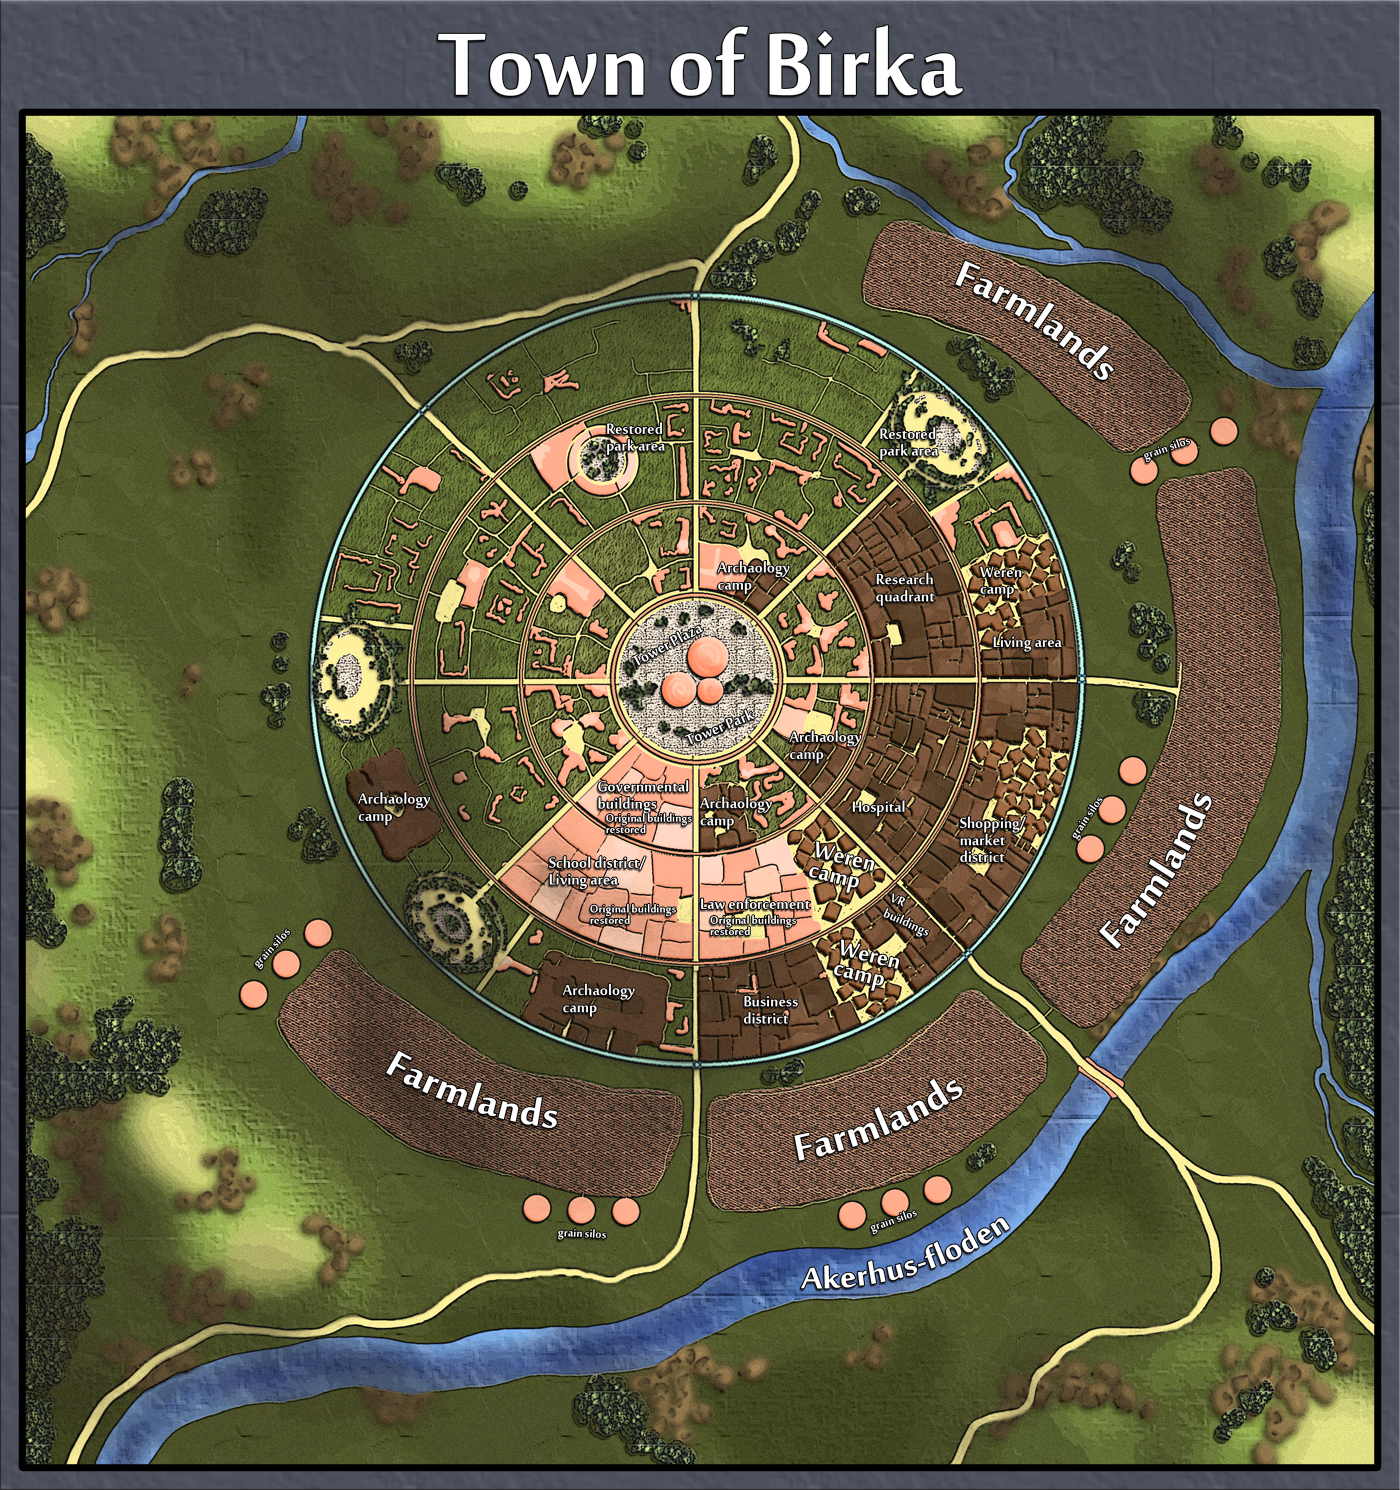 The starting town (or home town, if you will) of the PLayer Characters. The inhabitants have settled in the ruins of an old city, from a long-gone civilization. Slowly restoring buildings, they then move further into the city, as to not destroy potential clues as to the original inhabitants.